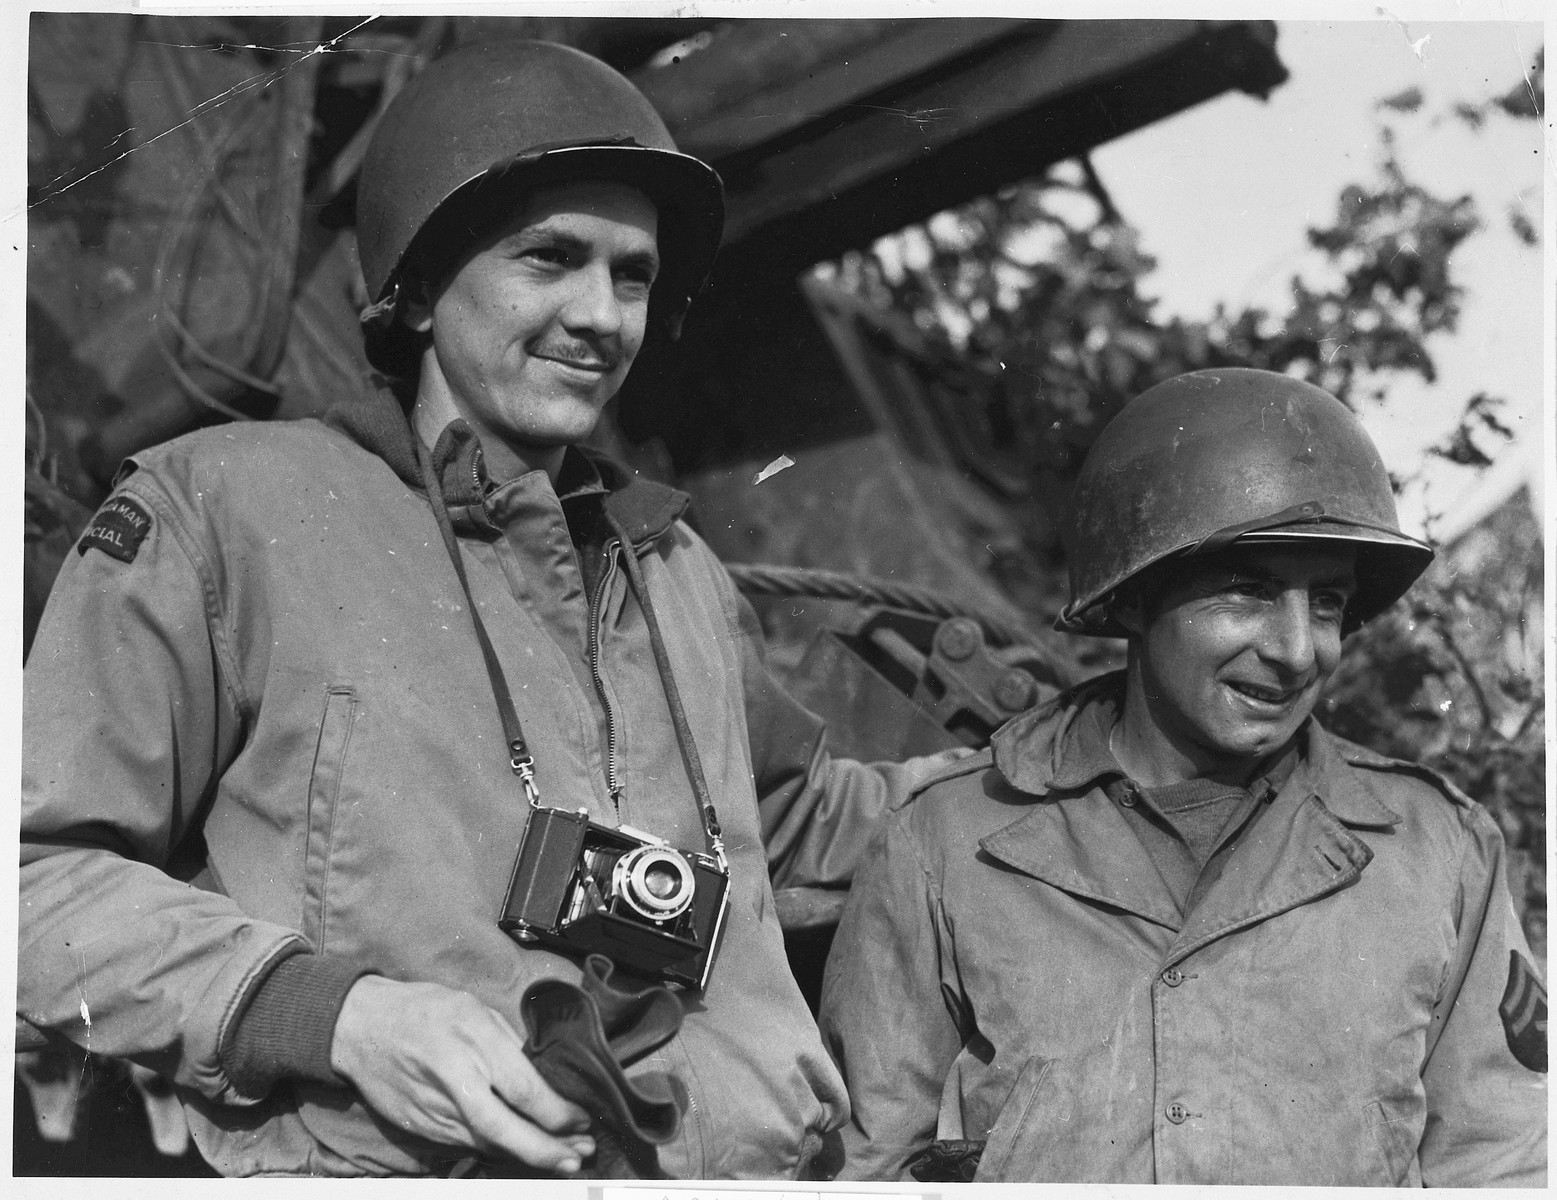 Portrait of two American soldiers from Tacoma, Washington serving in the U.S. Army in Europe during World War II.  Pictured are combat photographer, Arnold E. Samuelson (left) and Marvin R. Carter, an artilleryman attached to the same unit.